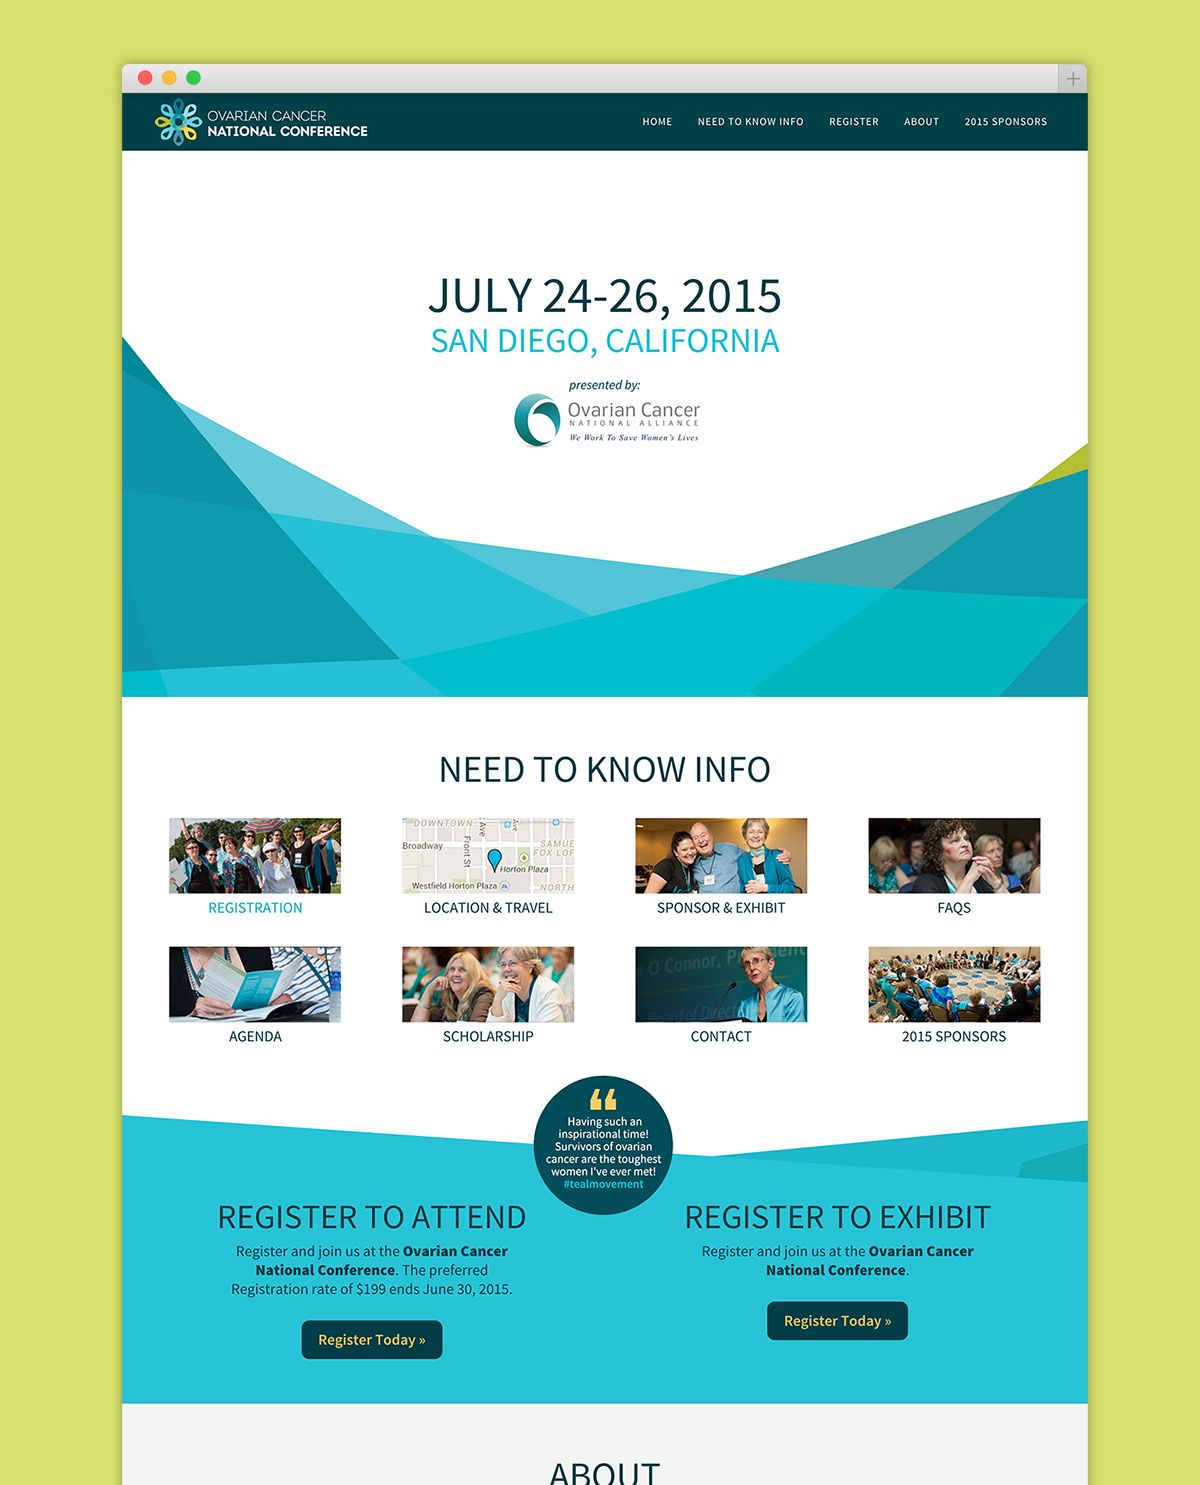 homepage design of Ovarian Cancer National Conference website ...